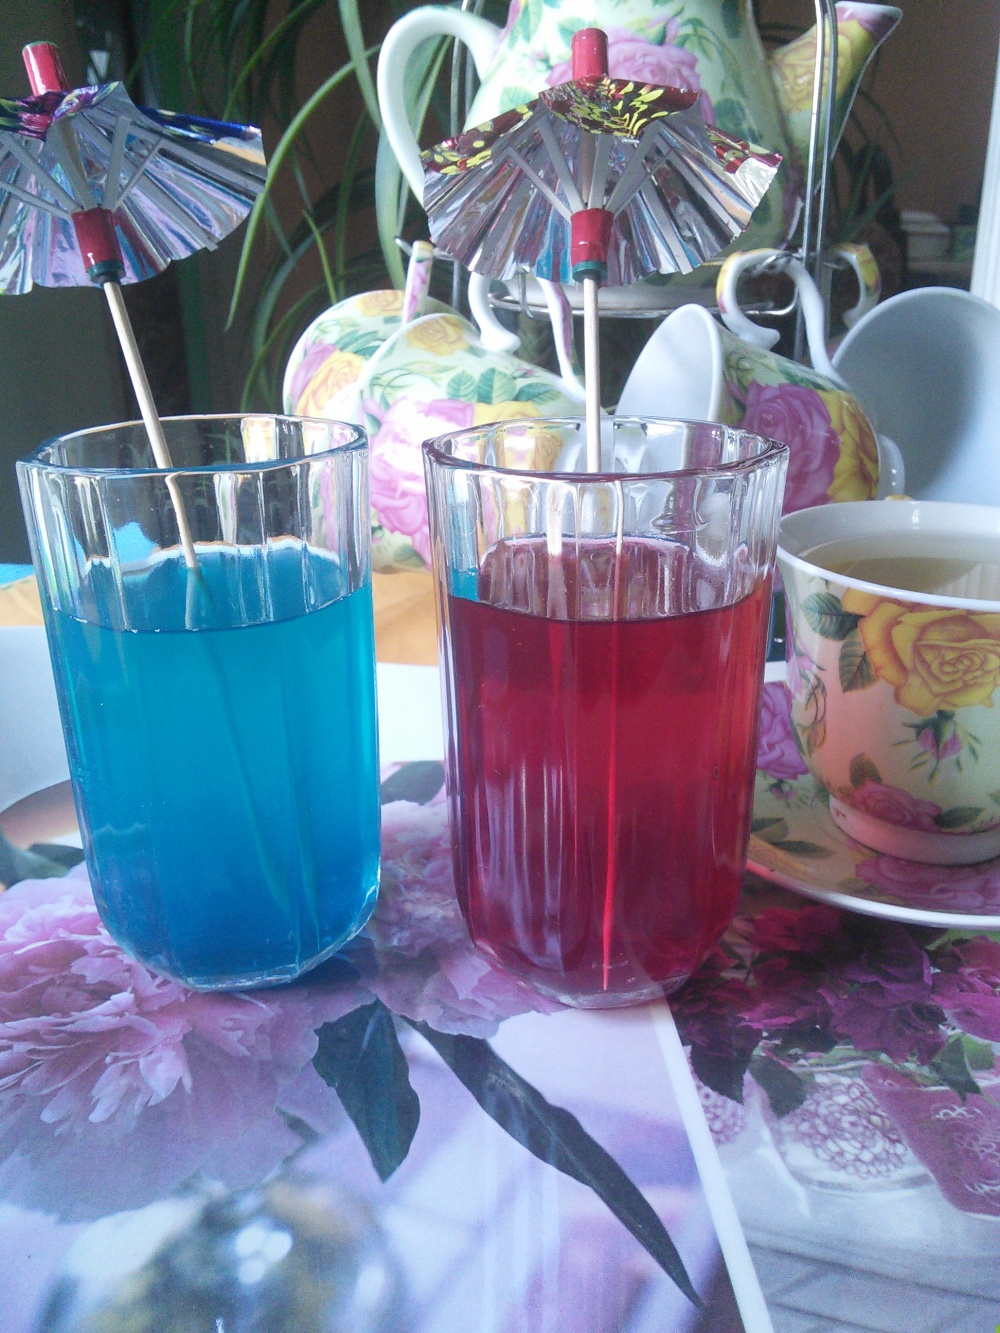 While there is tea, there is hope. – Sir Arthur Pinero